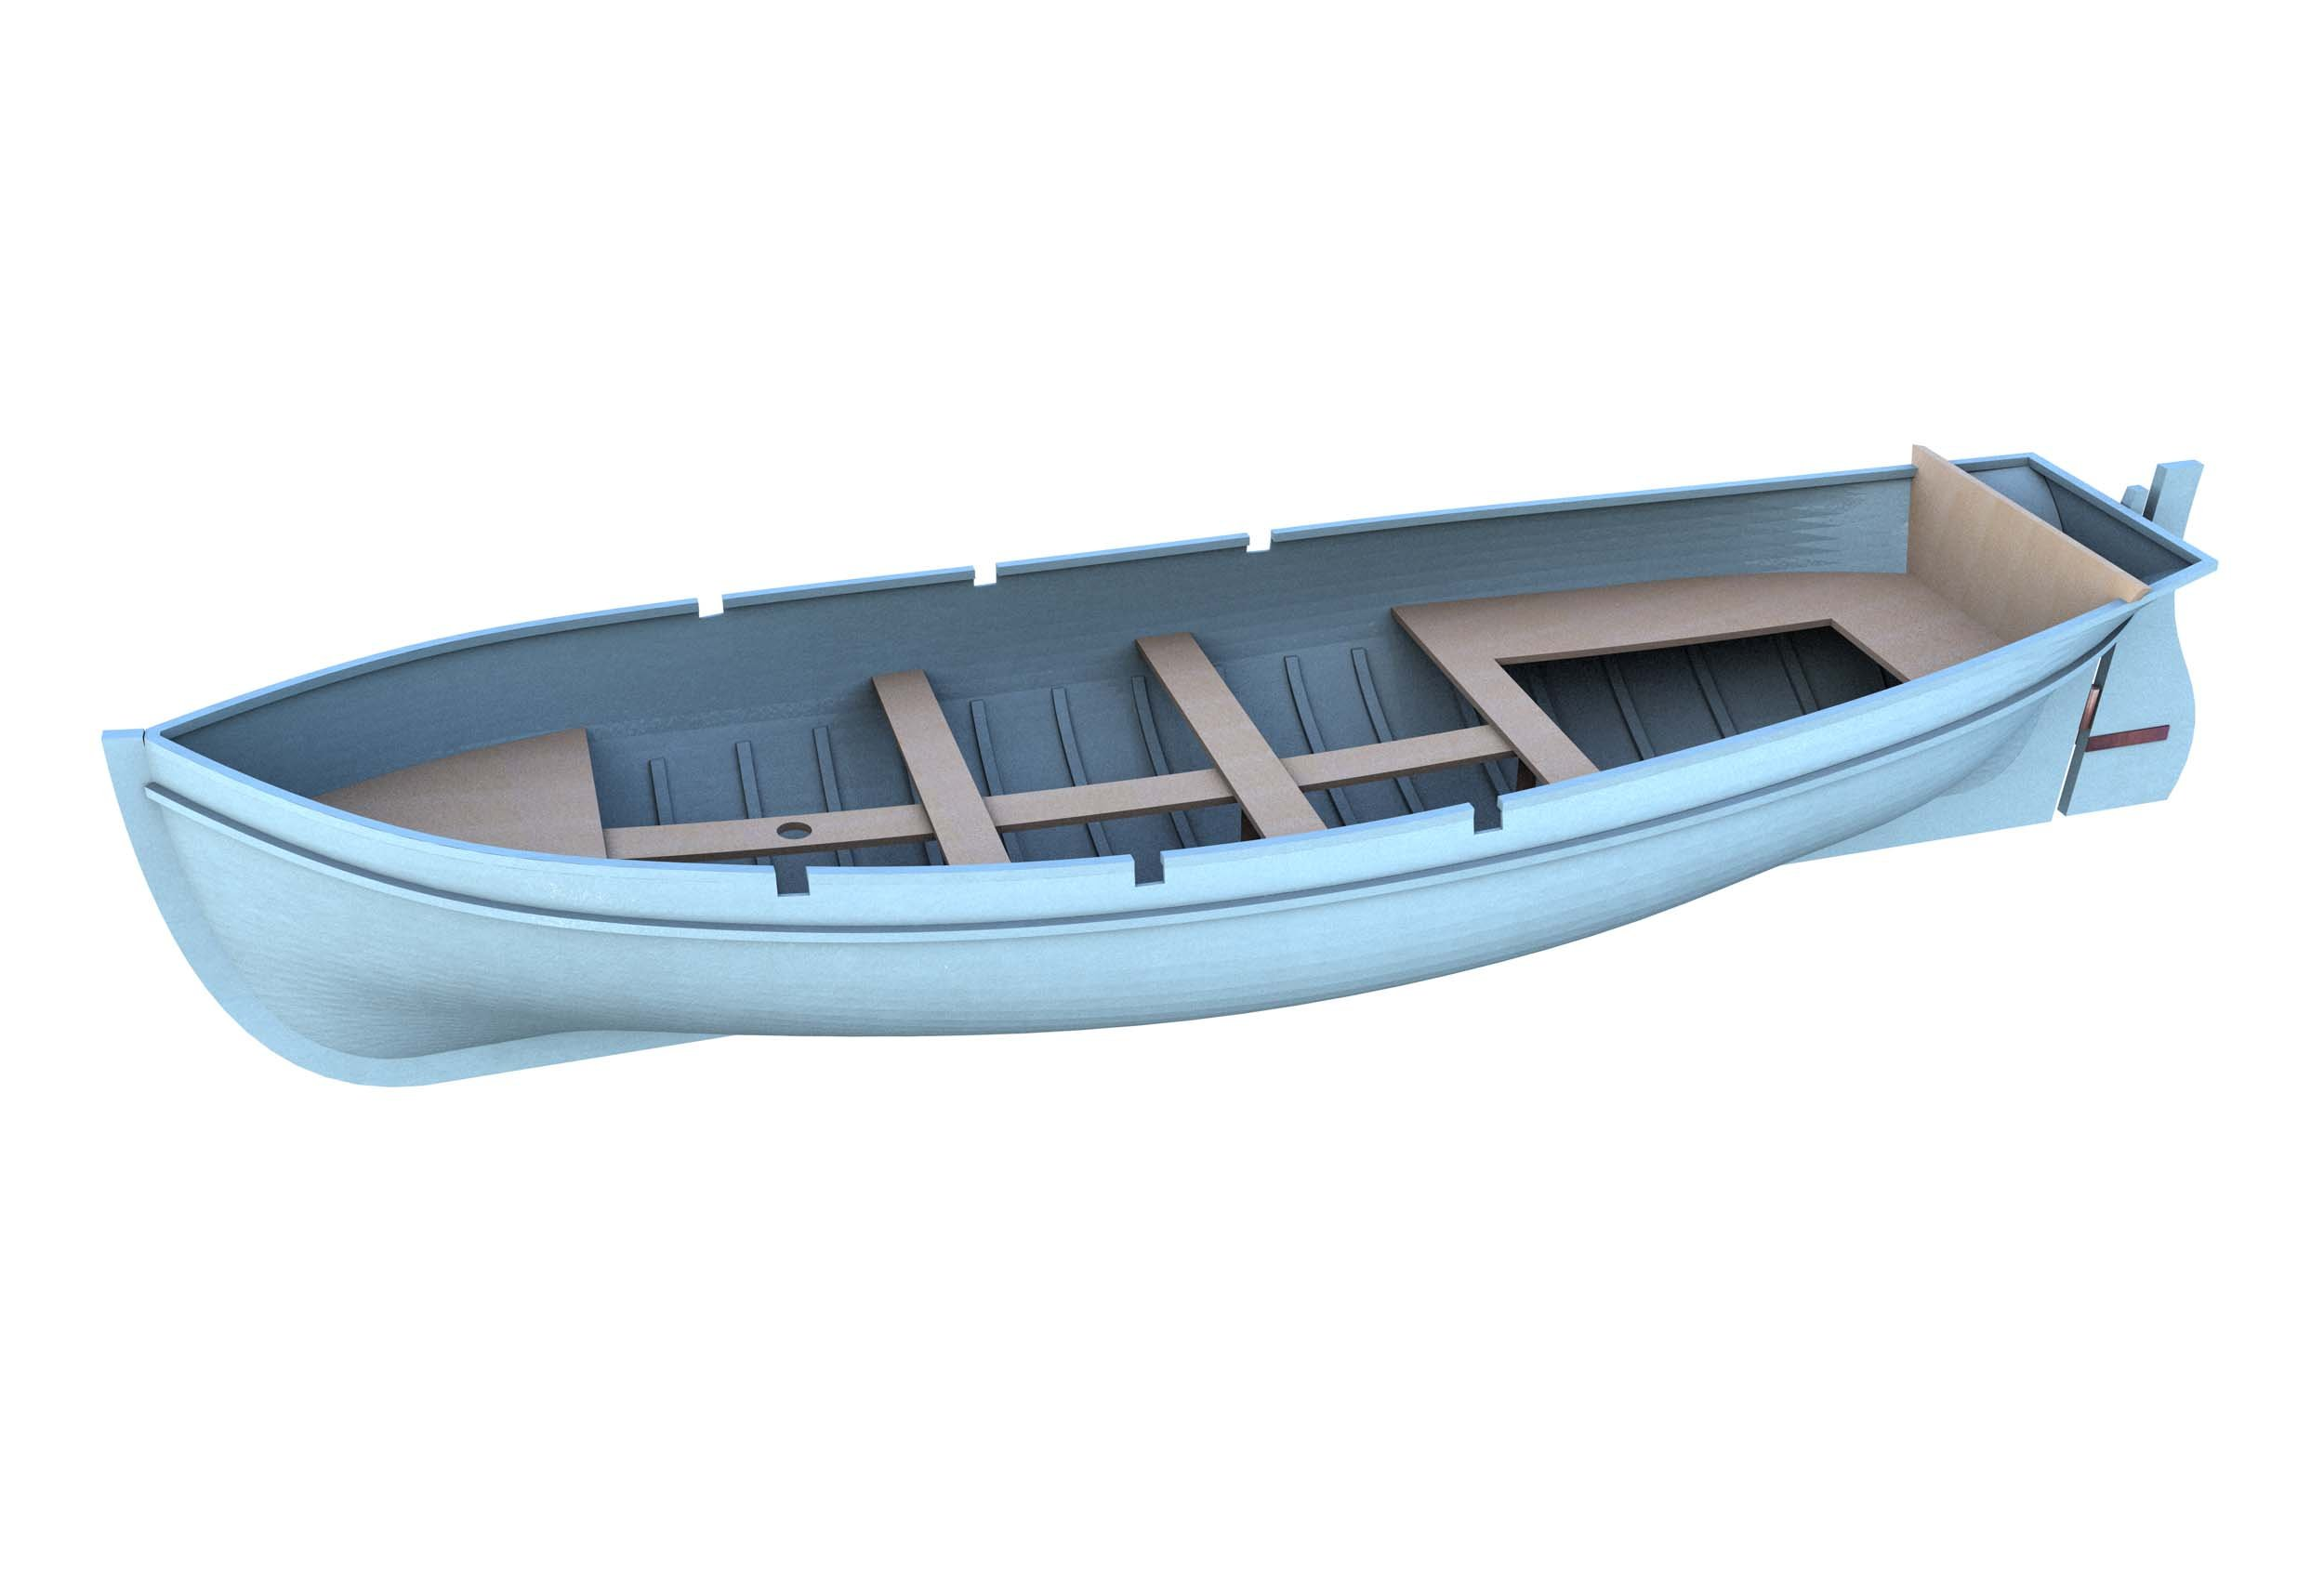 https://0901.nccdn.net/4_2/000/000/017/e75/CK94-Individual-Small-Boat-Jollboot-Port-Side.jpg